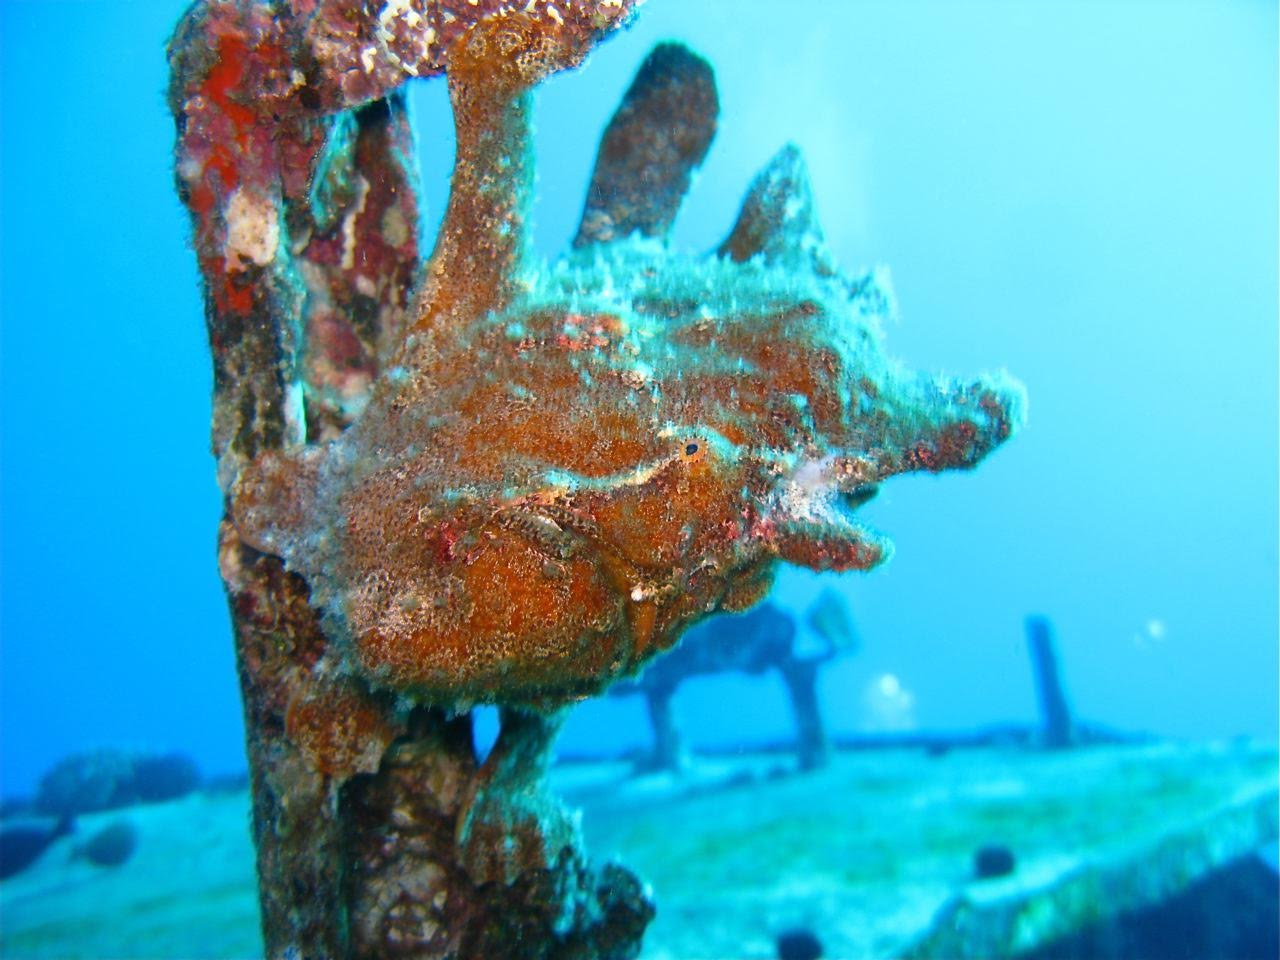 St. Anthony's Wreck – Frogfish